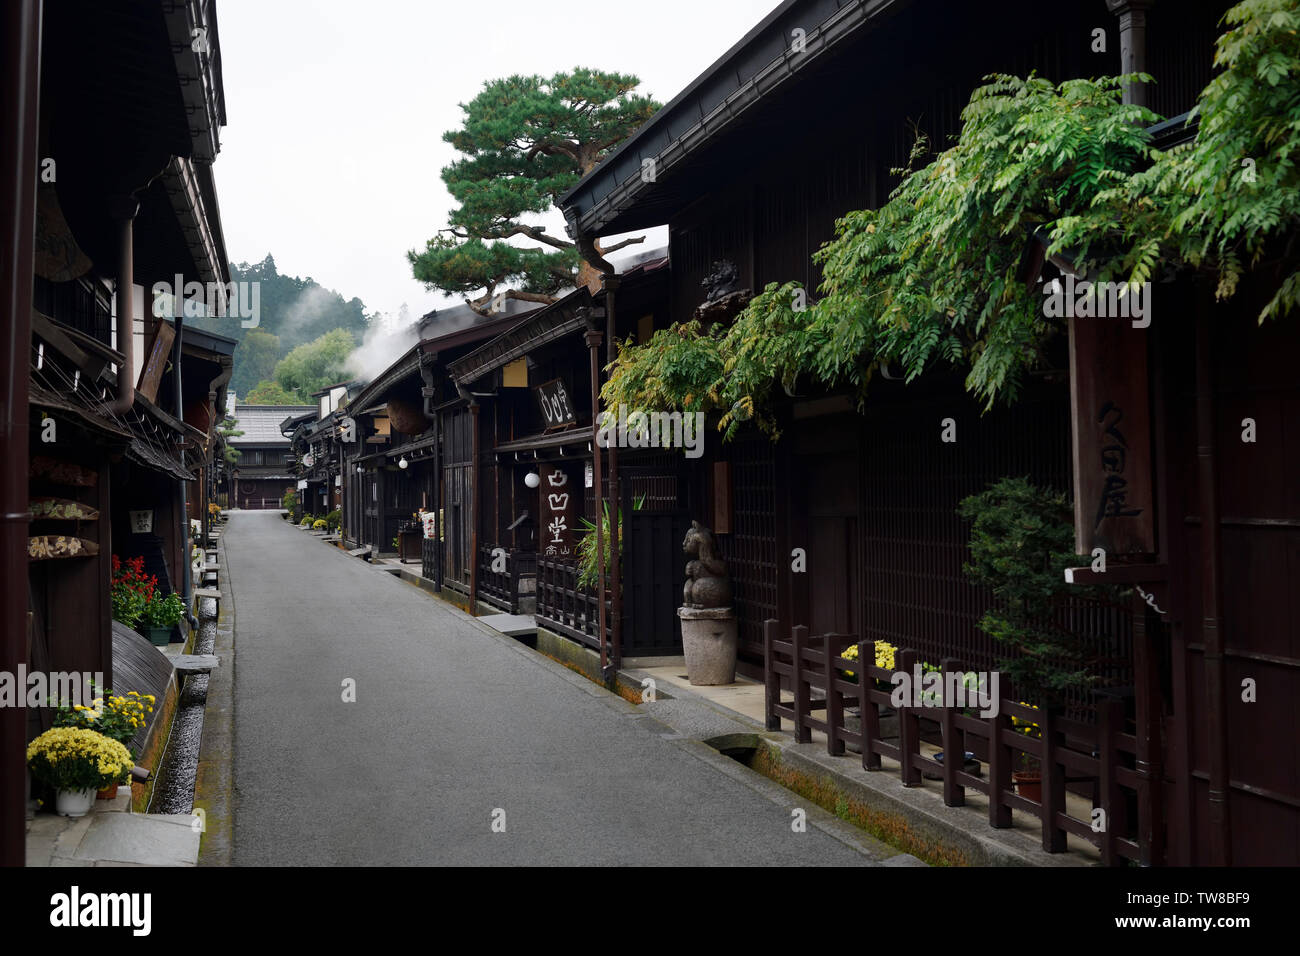 Kamisannomachi, old town street of Takayama city in early morning with steam coming from a sake brewery shop. Kamisannomachi is a merchant town street - Stock Image